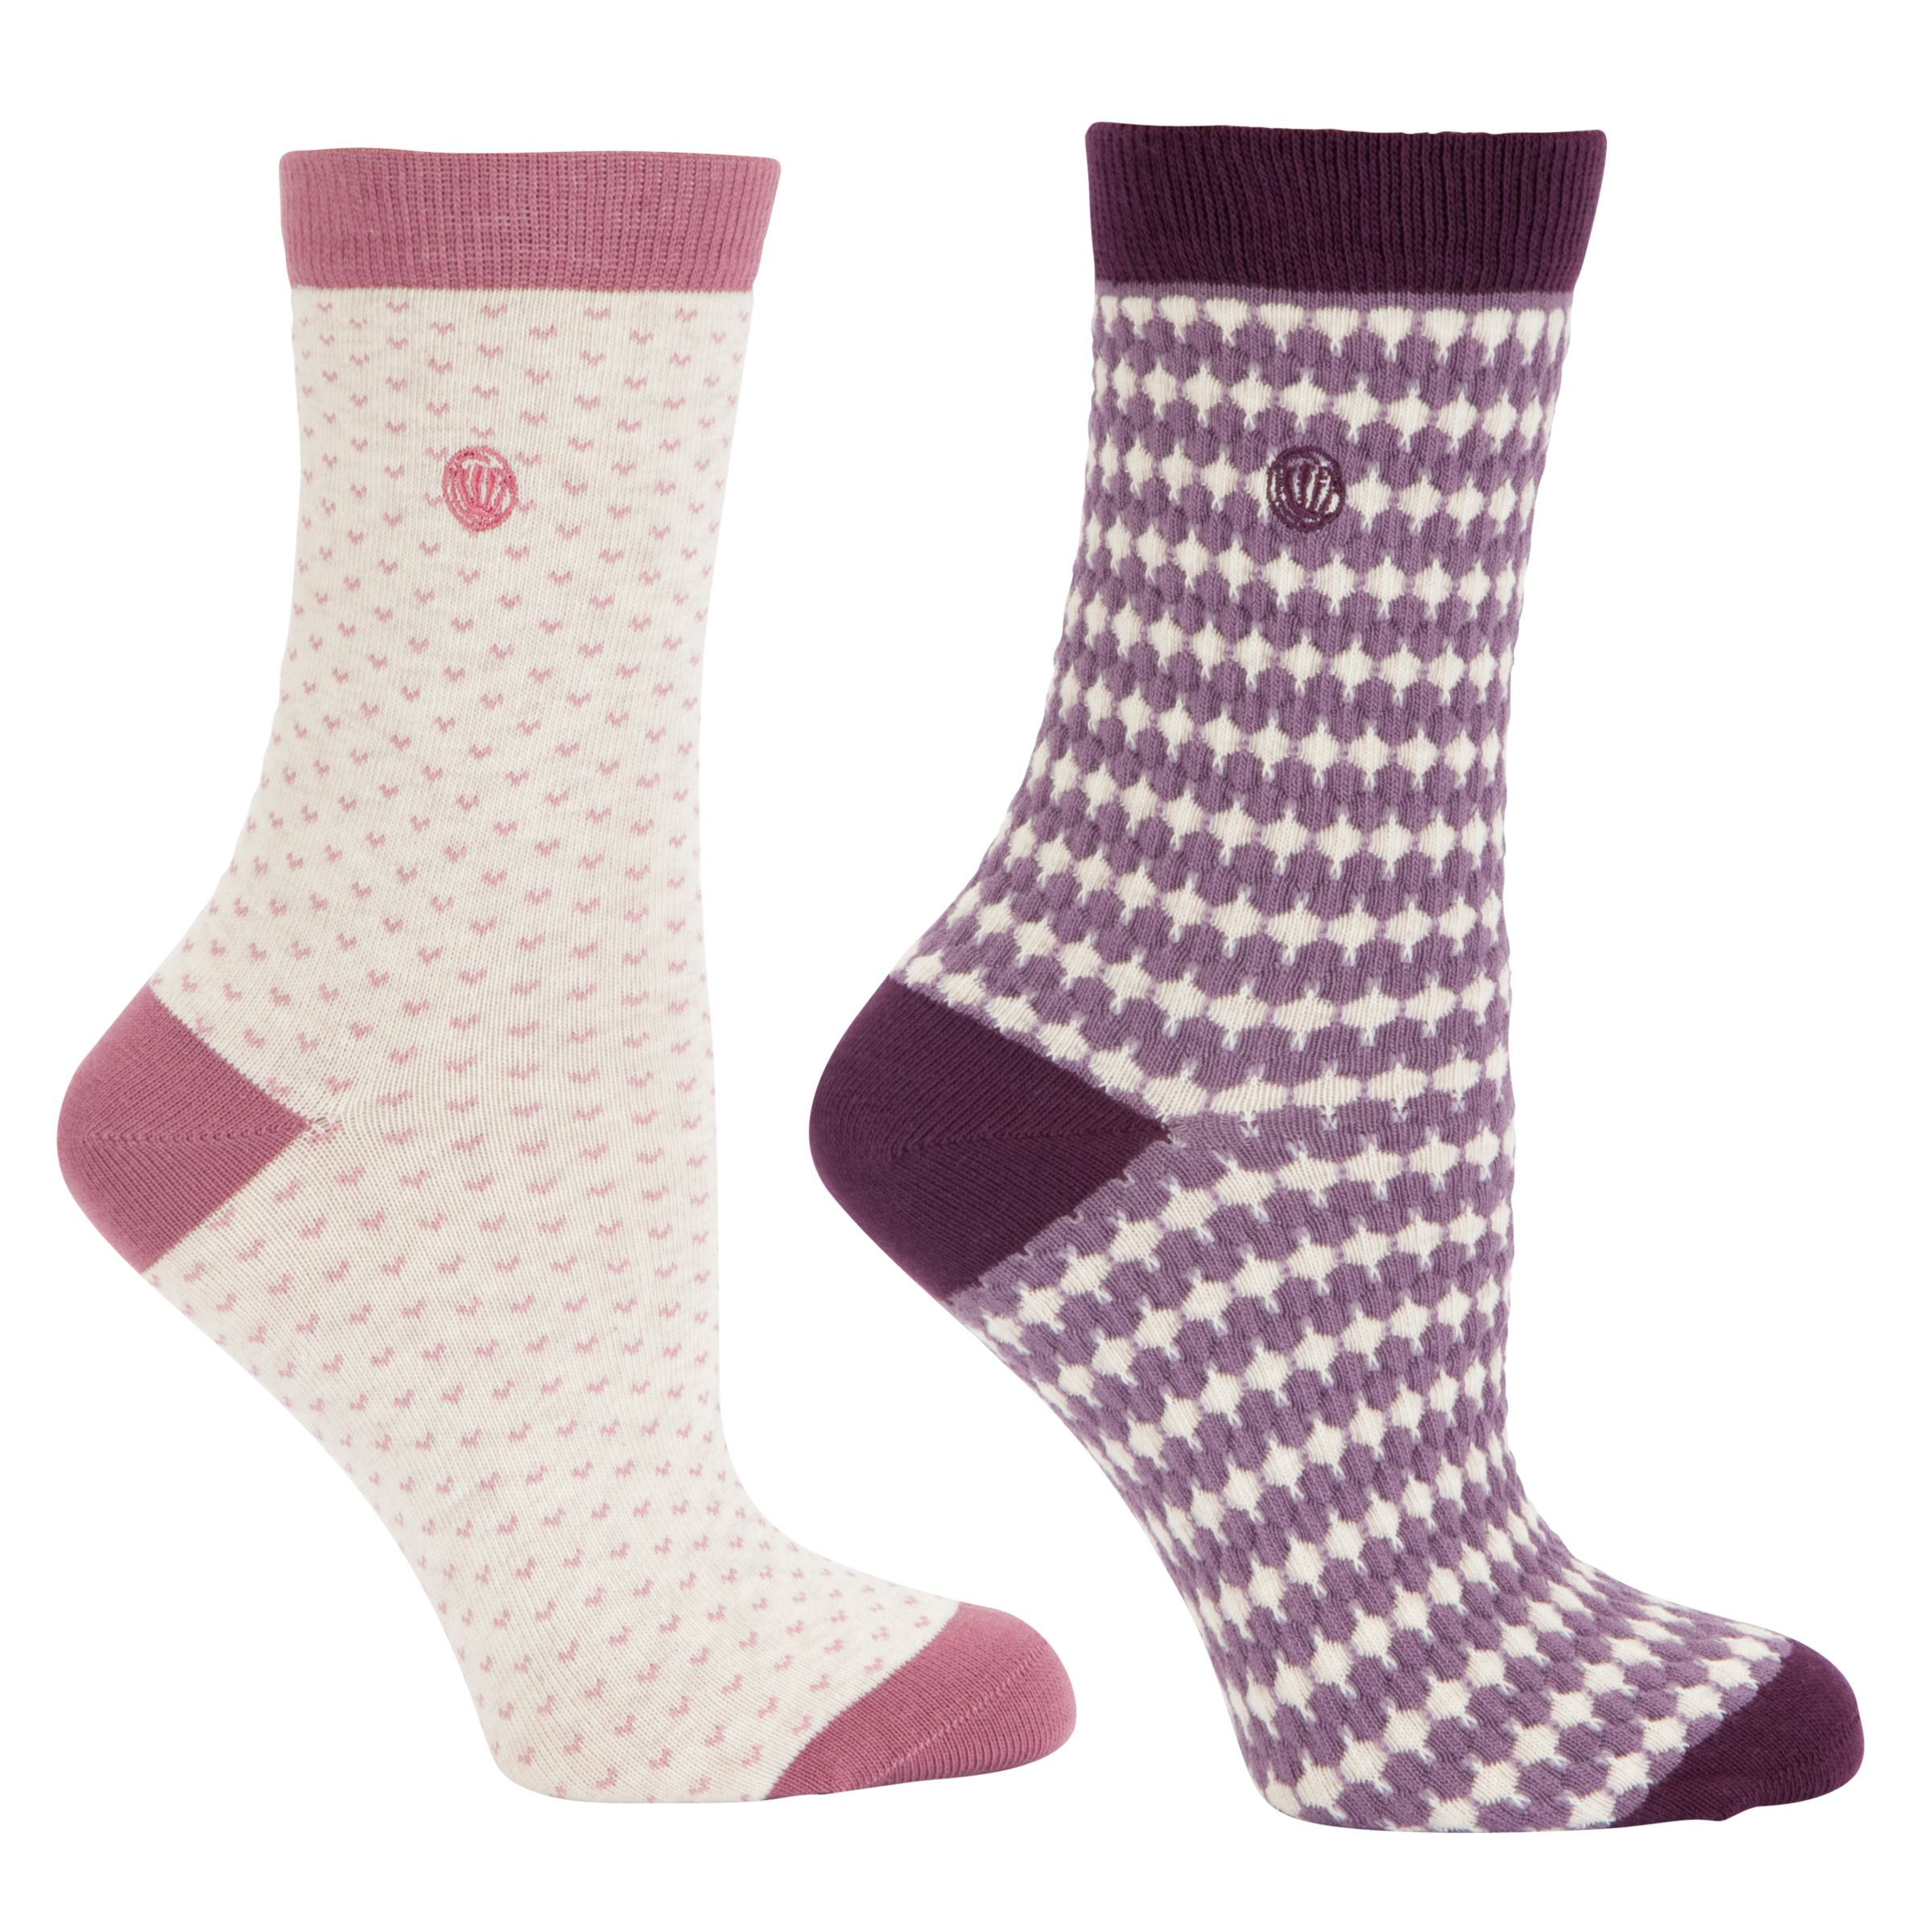 Fat Face Stripe and Spot Patterned Socks, Pack of 2, Mauve